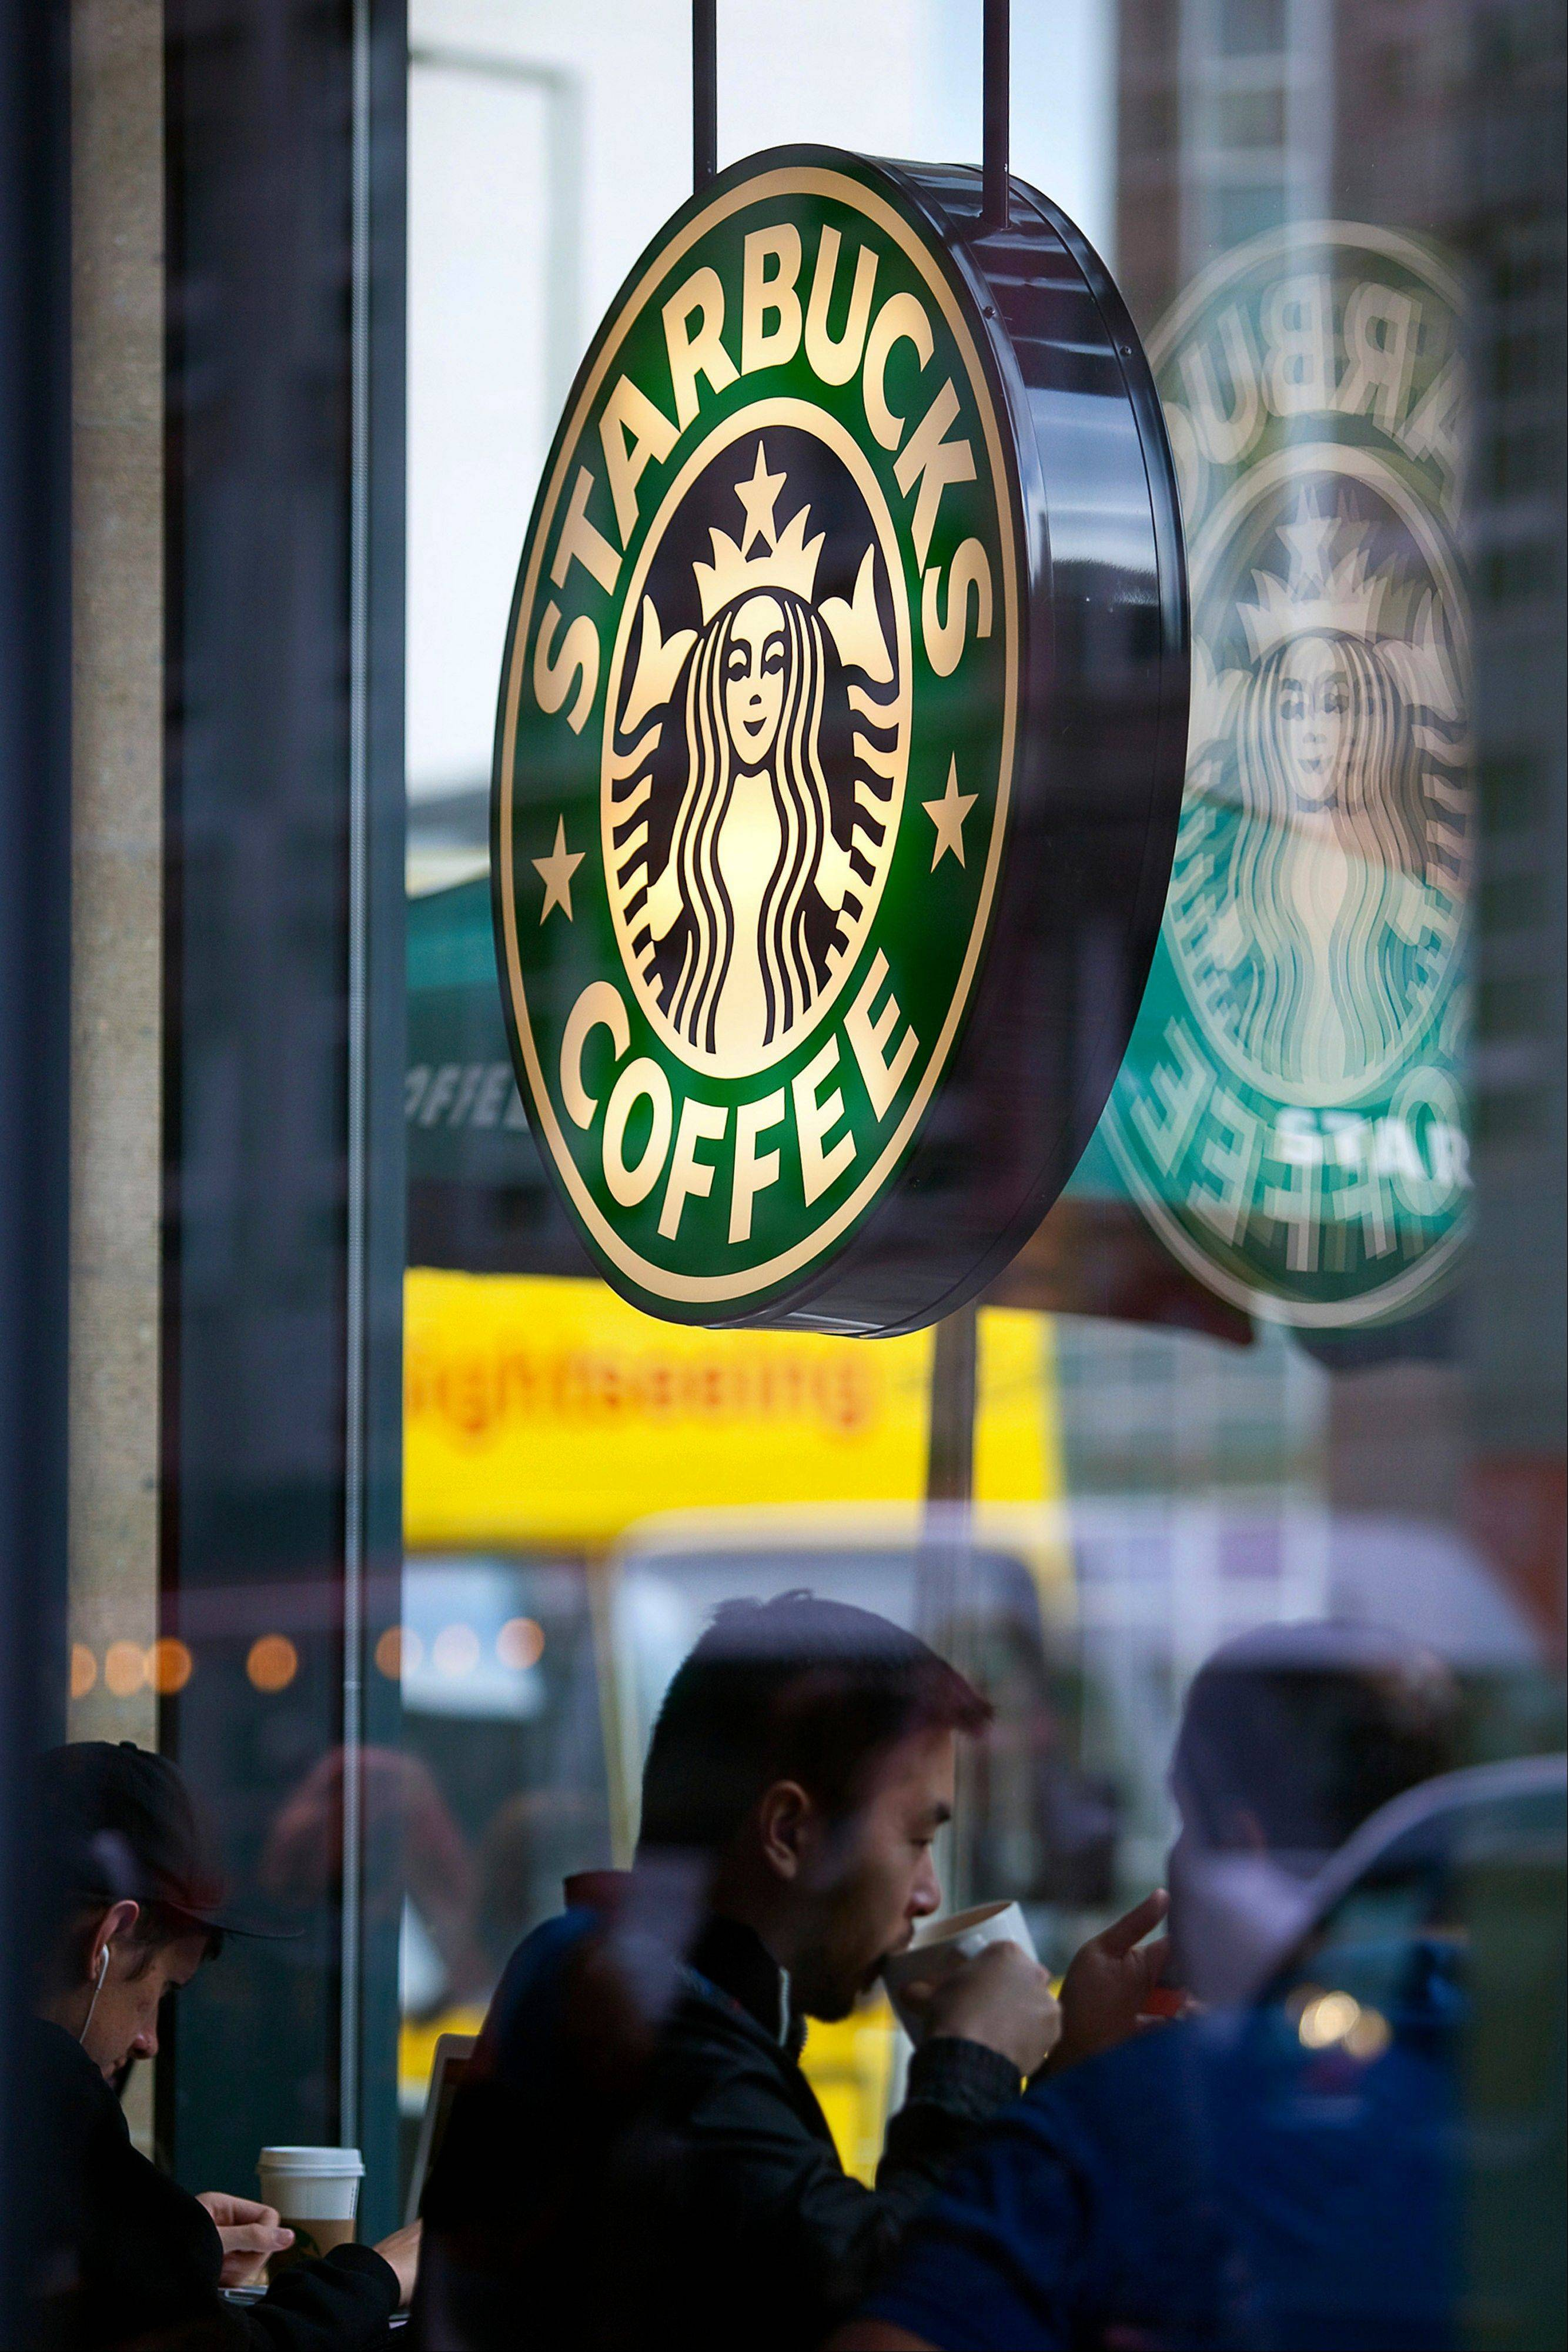 Starbucks is getting competition for the caffeine kick from a variety of market sources.